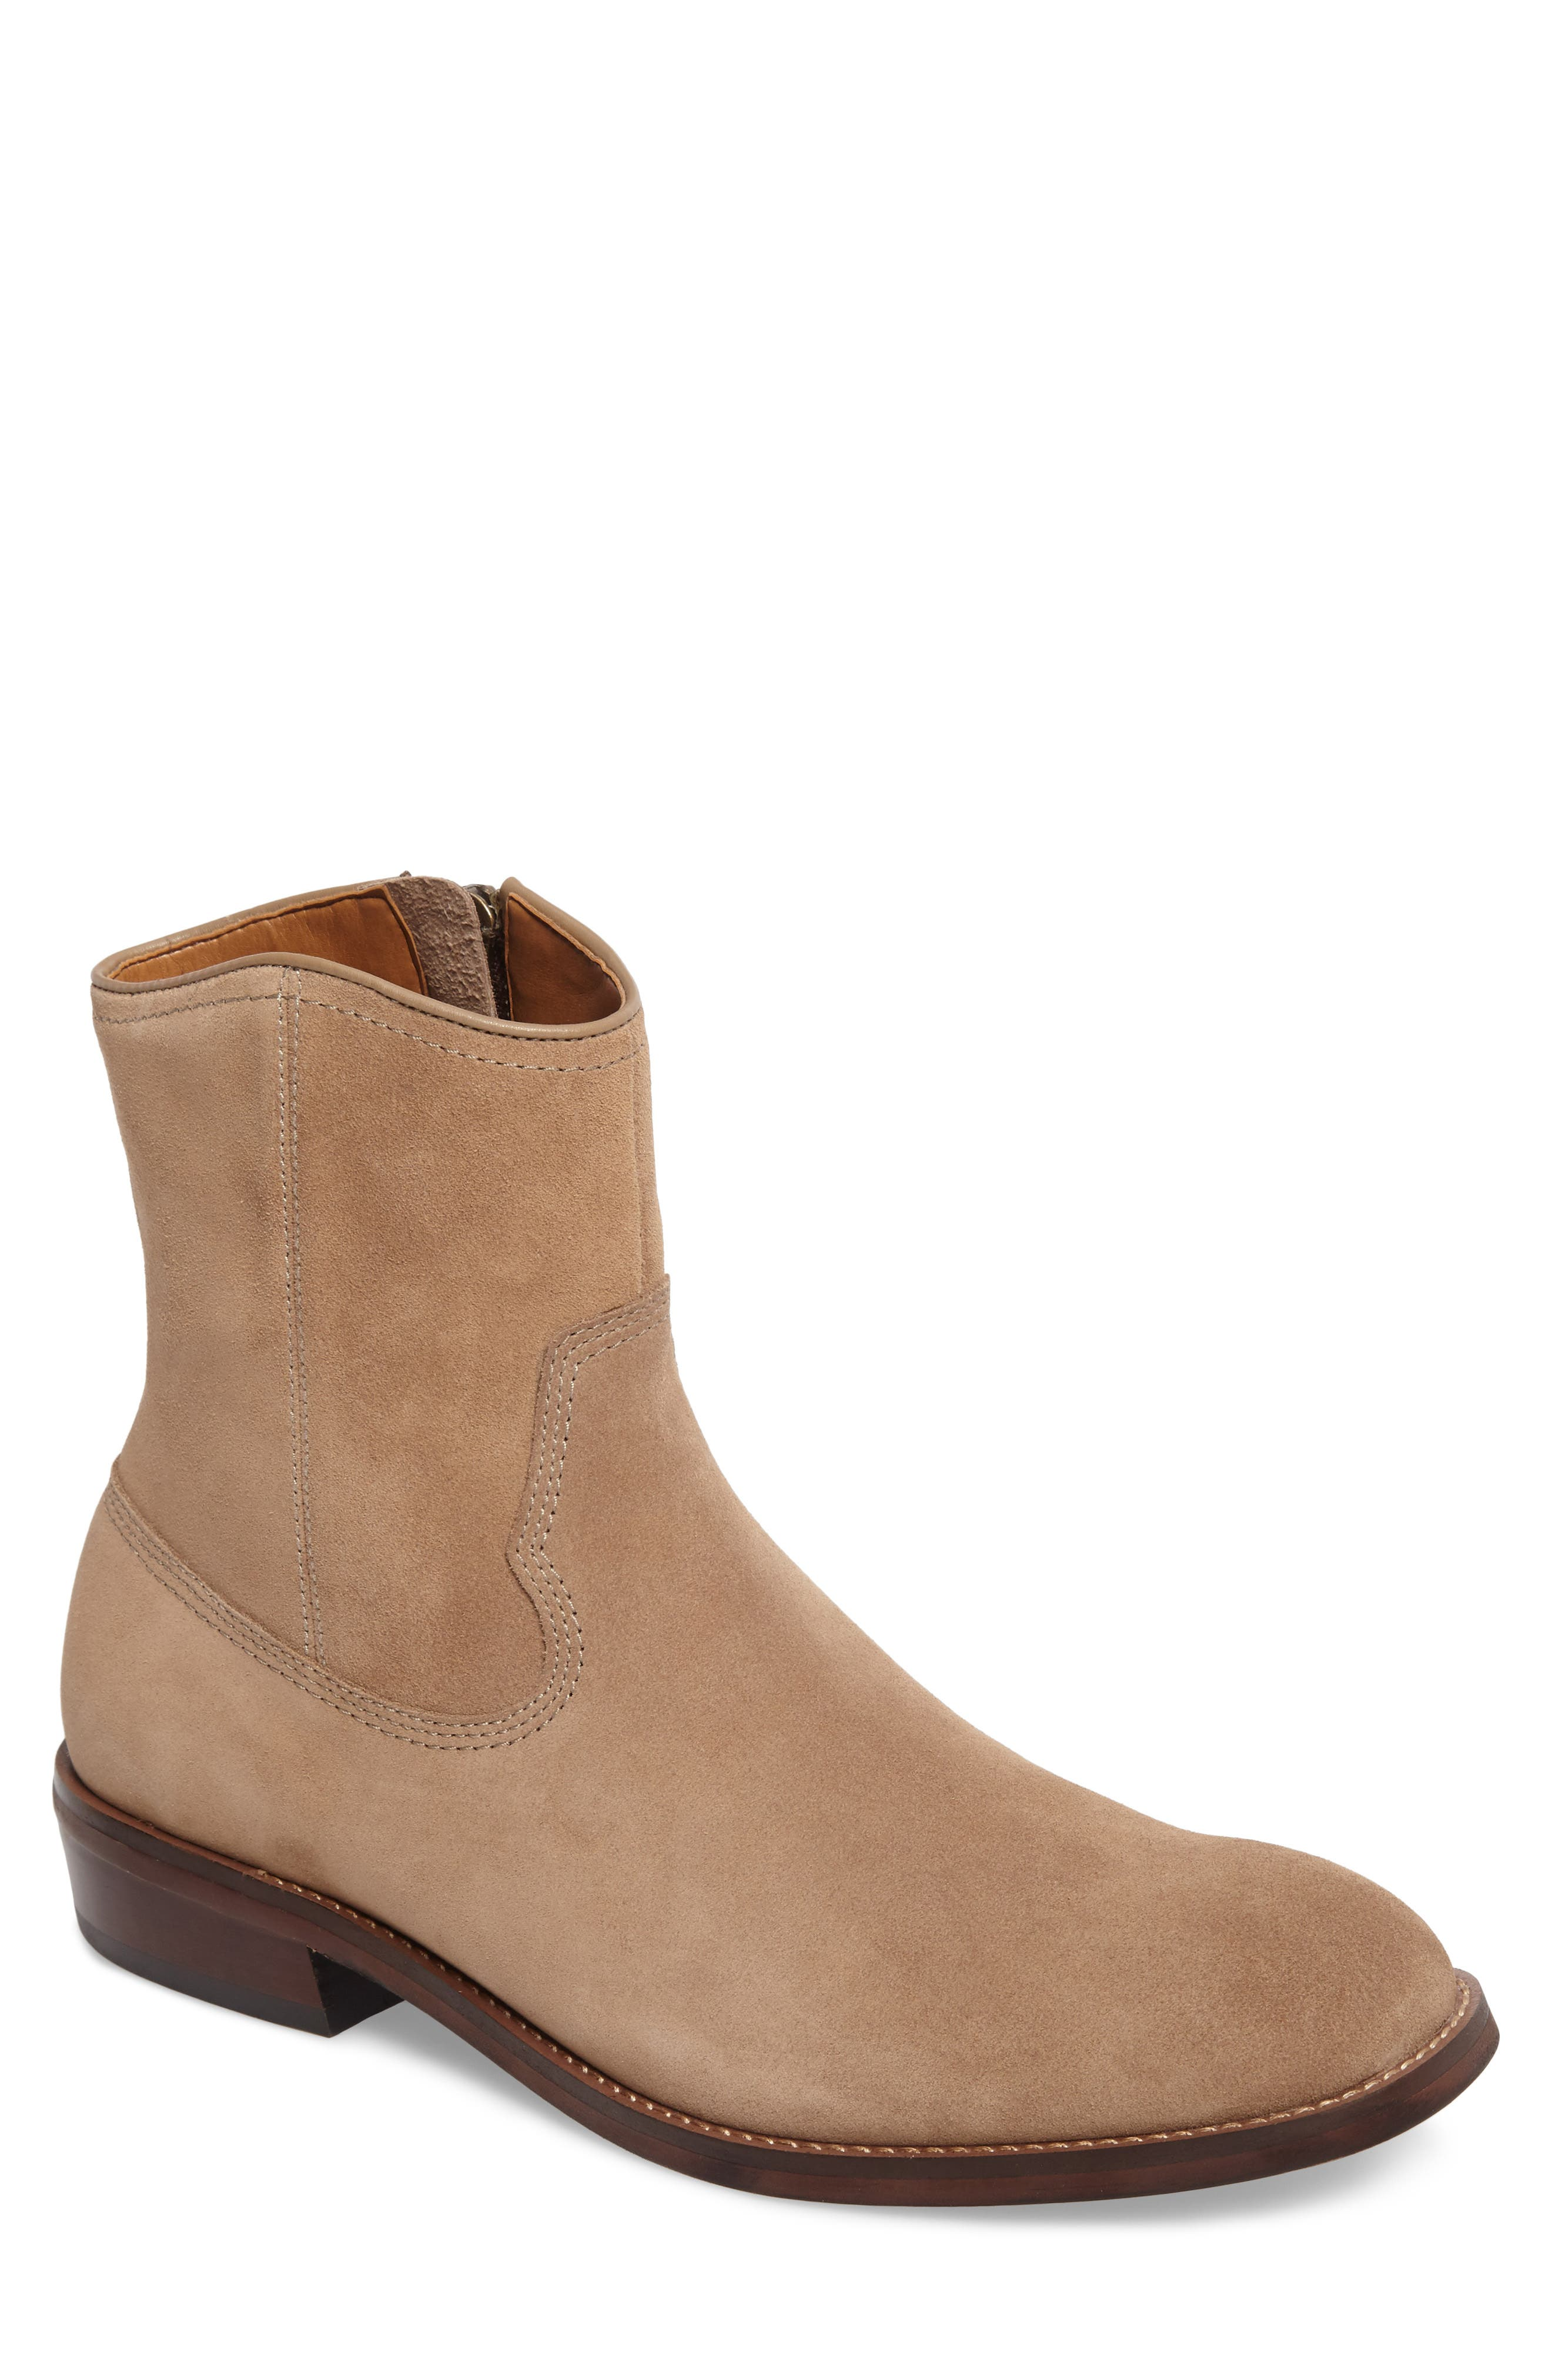 Fazio Zip Boot,                         Main,                         color,